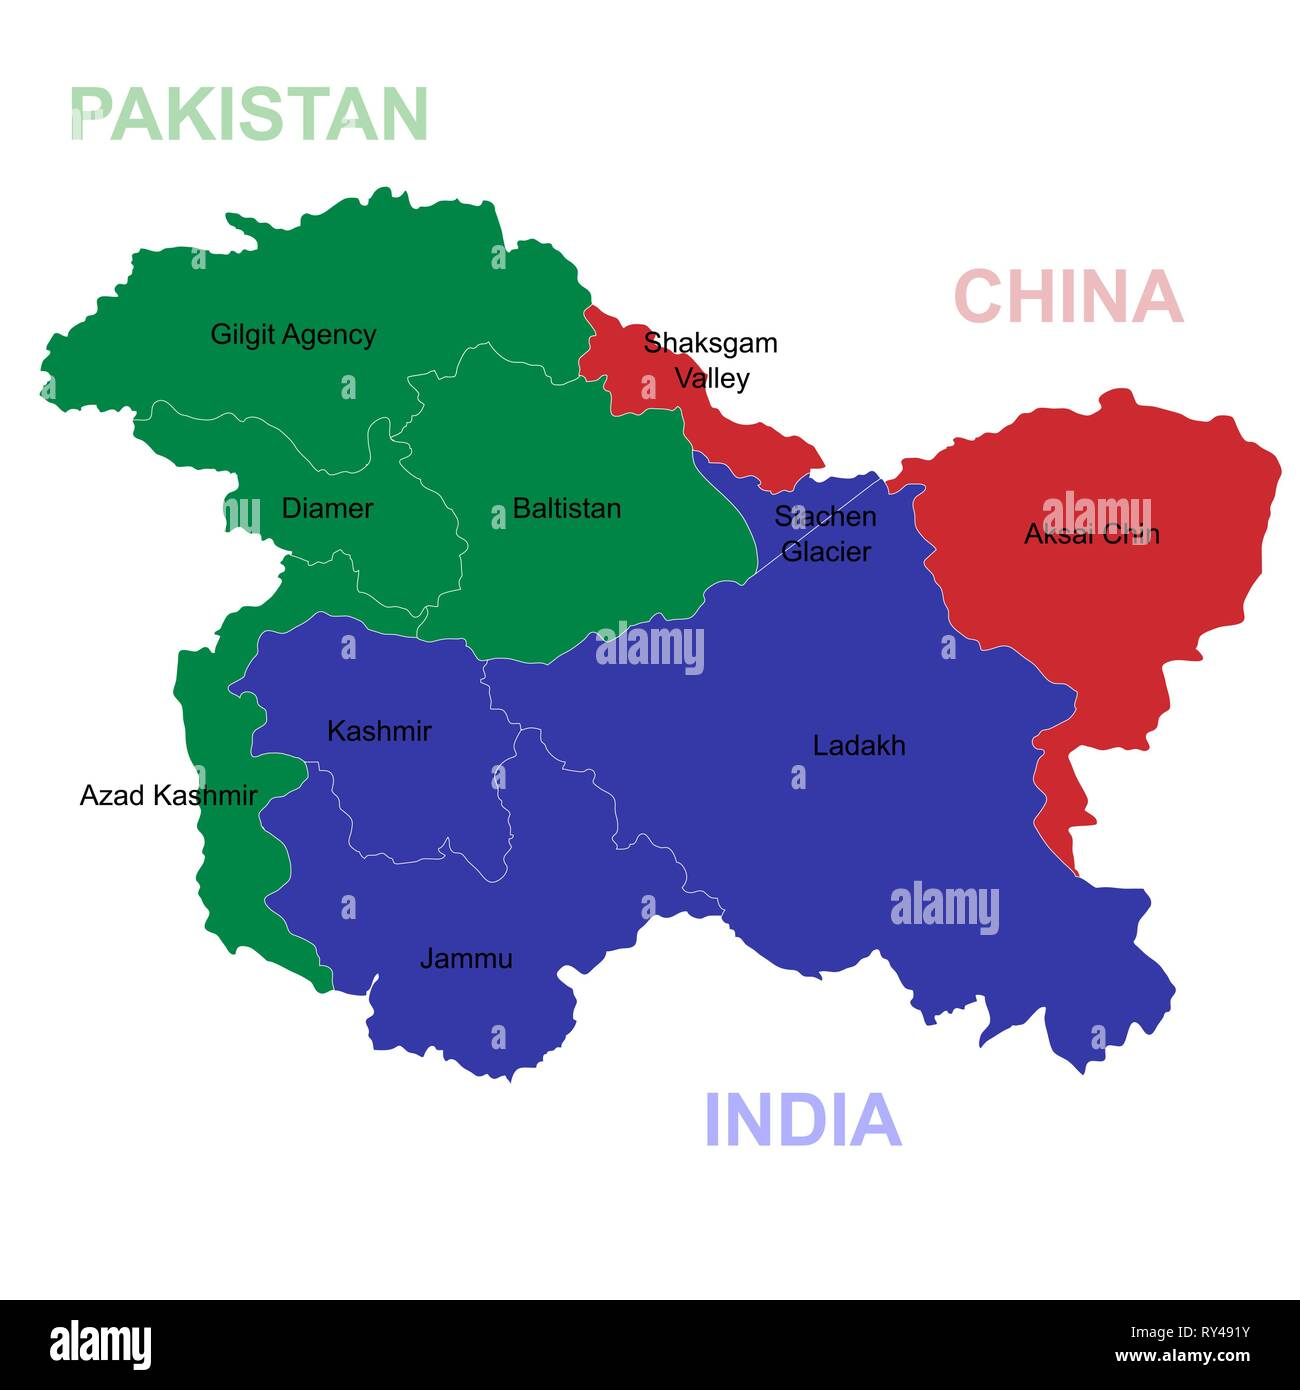 India stan Border Map Stock Photos & India stan ... on pune on world map, europe on world map, china on world map, near east on world map, middle east on world map, amritsar on world map, arabian peninsula on world map, jammu and kashmir on world map, the caribbean on world map, korean peninsula on world map, great britain on world map, yangtze river on world map, shang empire on world map, tamluk on world map, scandinavia on world map, benelux on world map, sahara on world map, sundarbans on world map, asian on world map, deccan peninsula on world map,